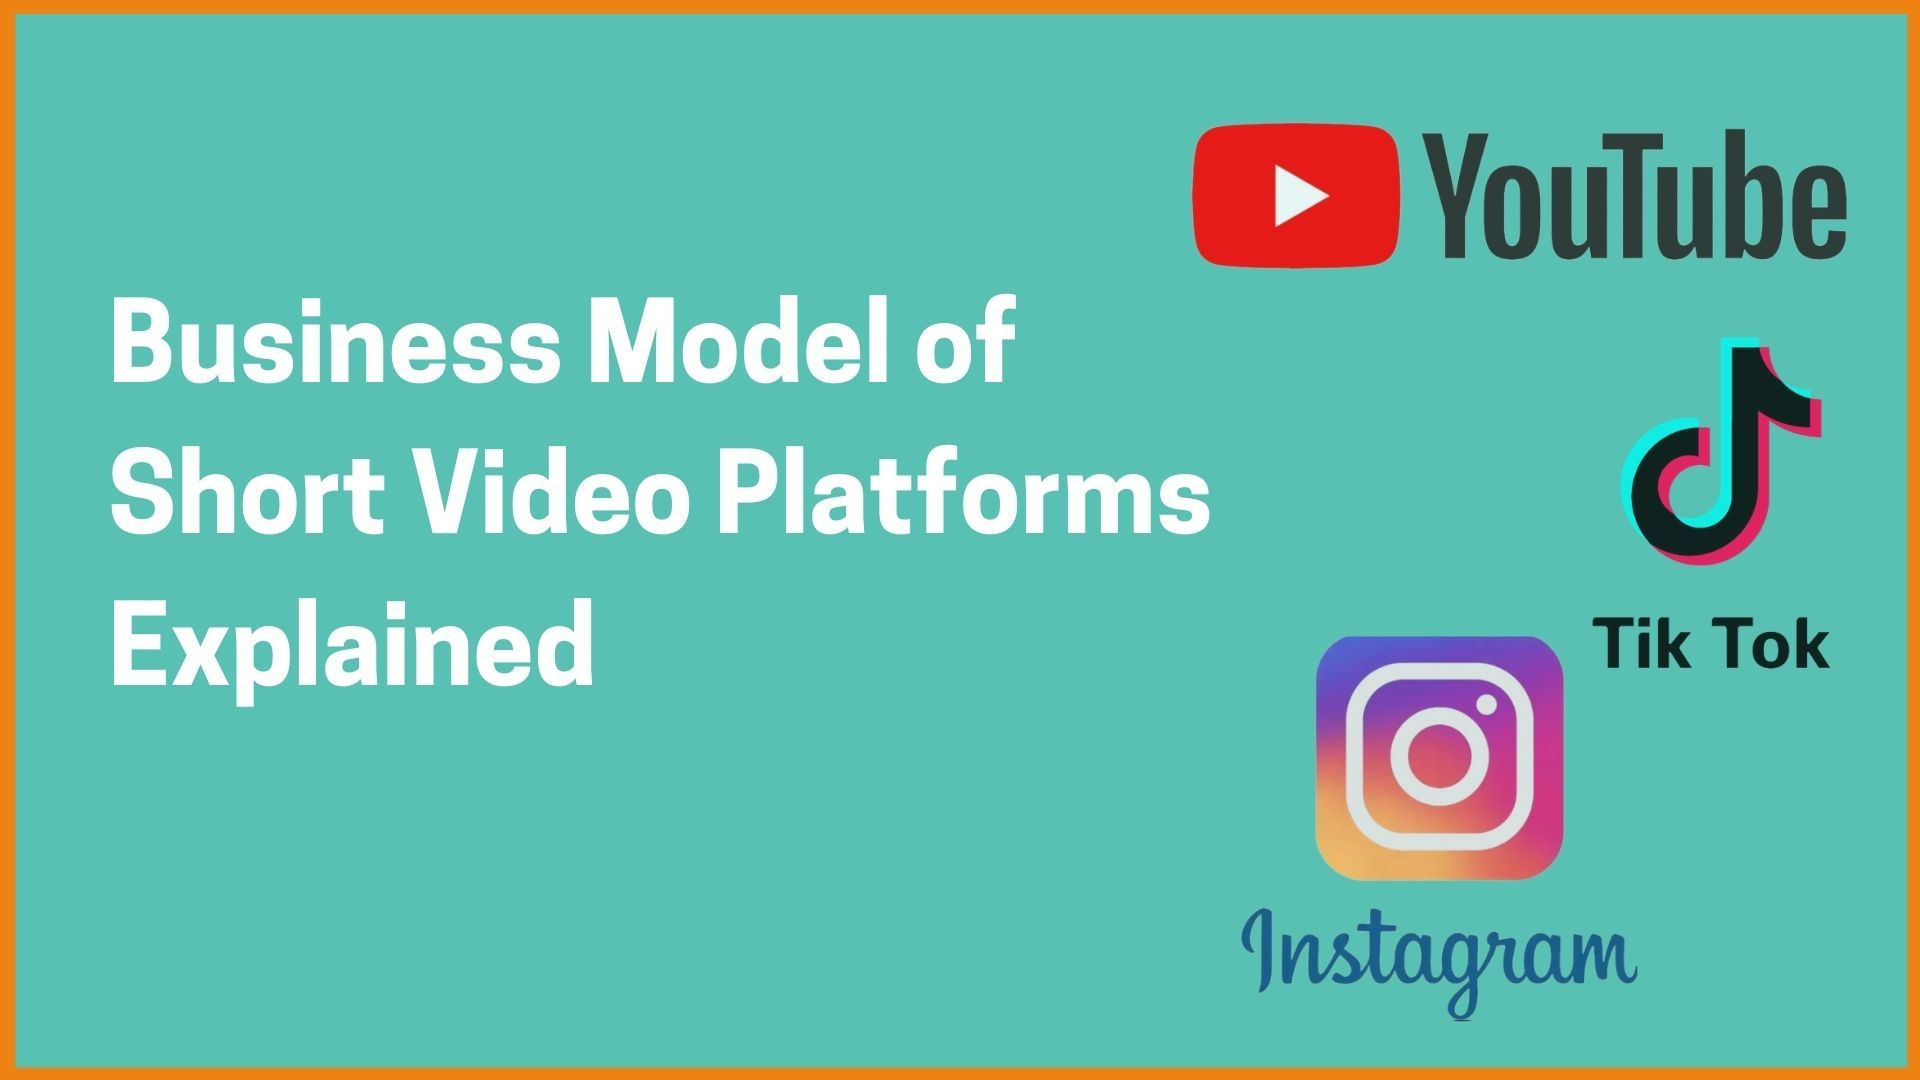 Business Model of Short Video Platforms Explained